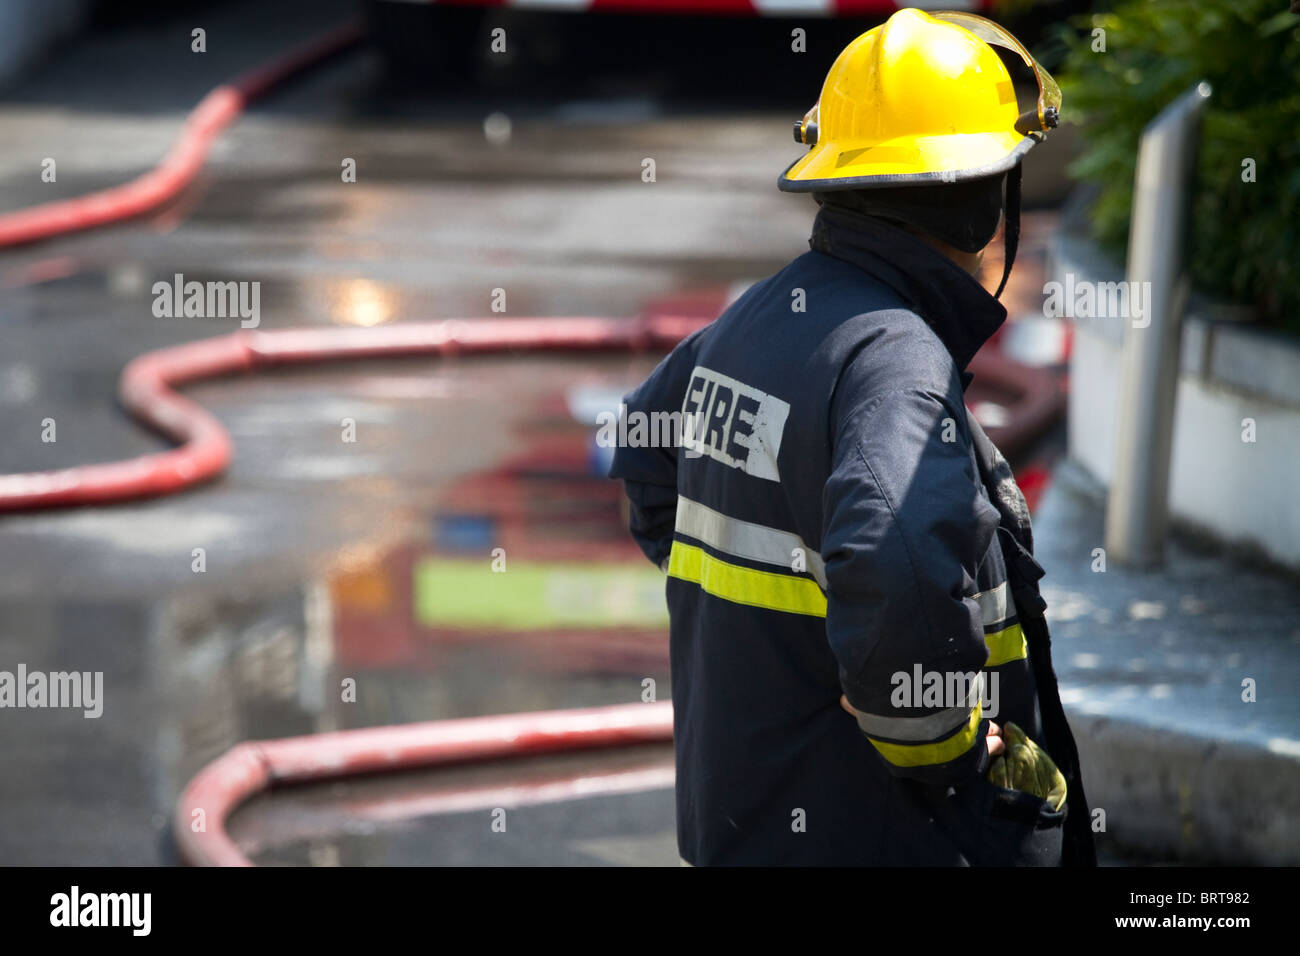 Firefighter brigade at work. Shallow depth of field. - Stock Image